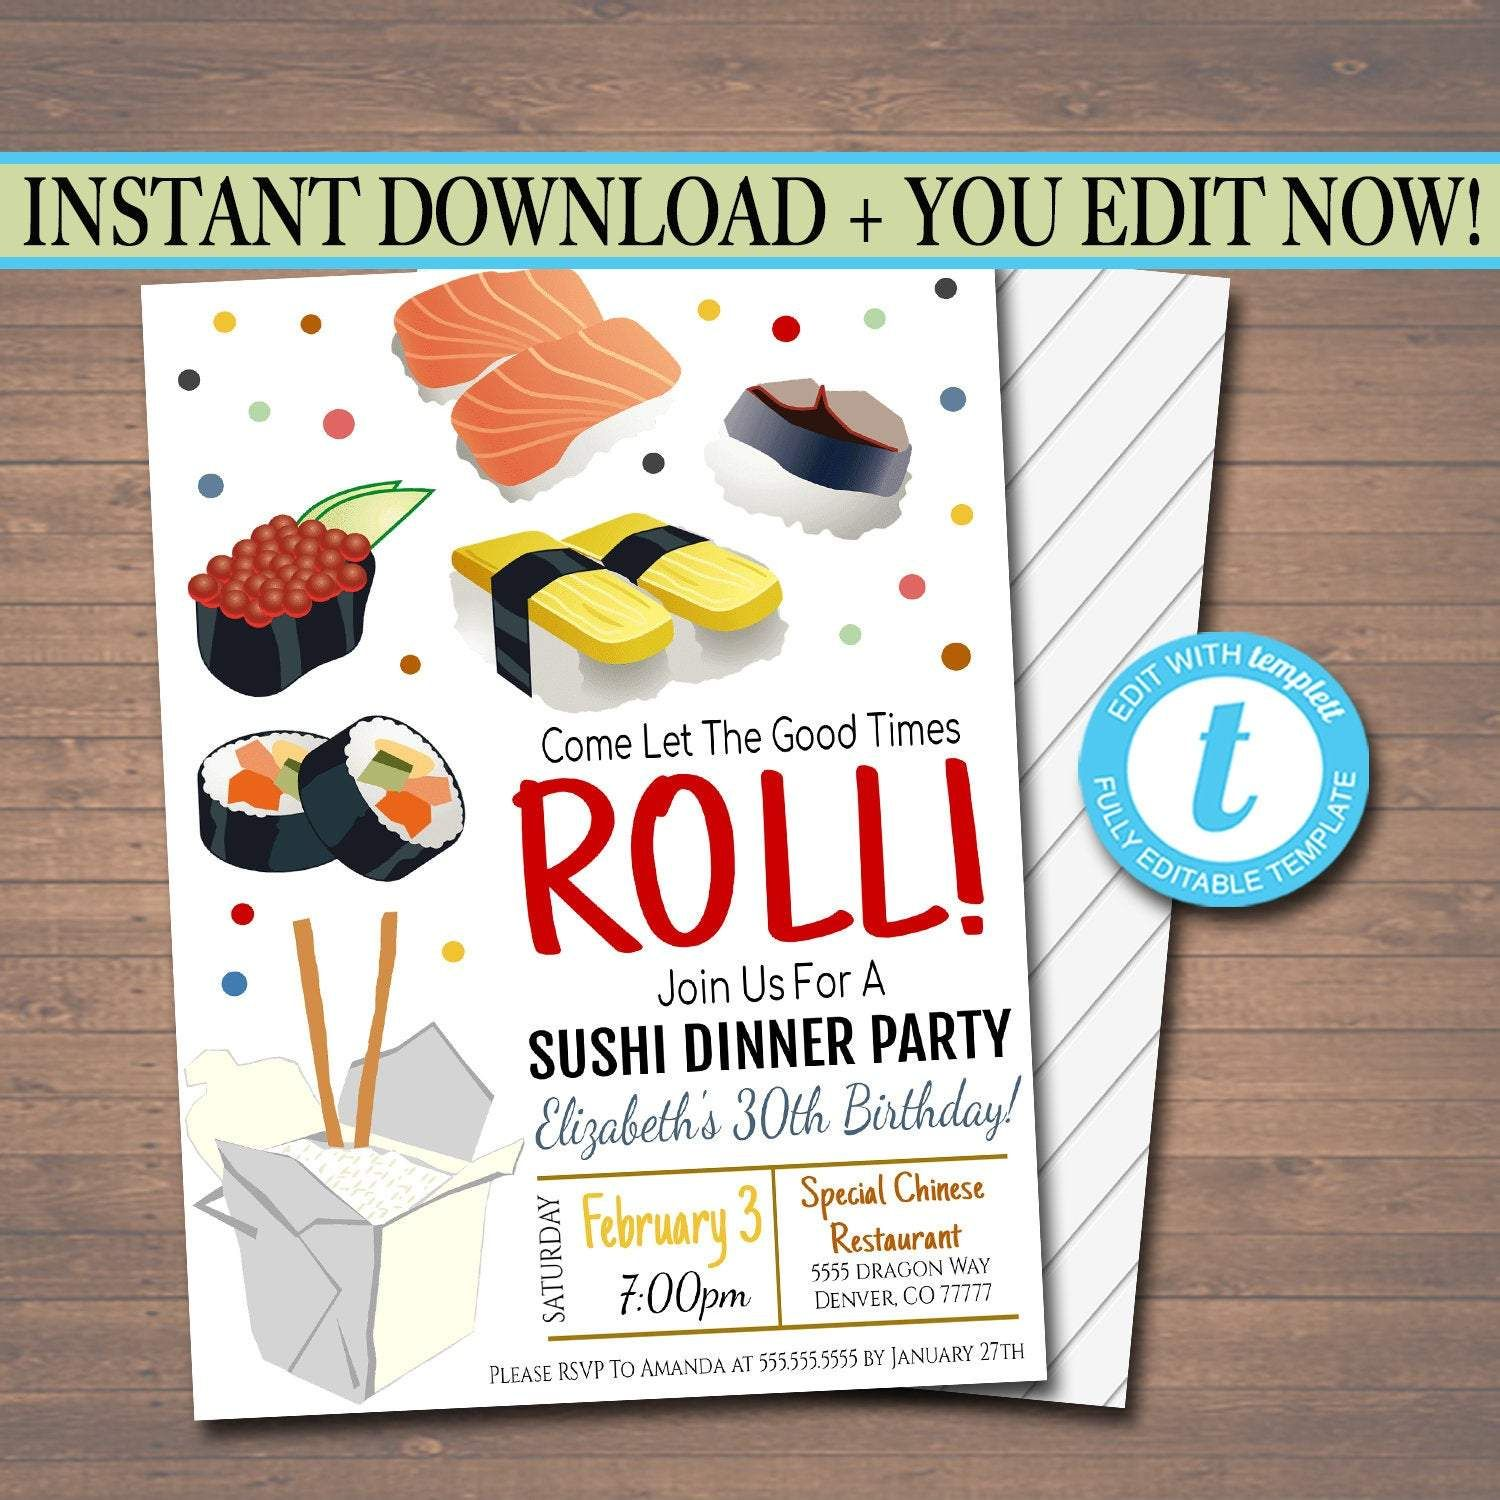 Sushi Dinner Party Invitation, Party Invite, Chinese Restaurant